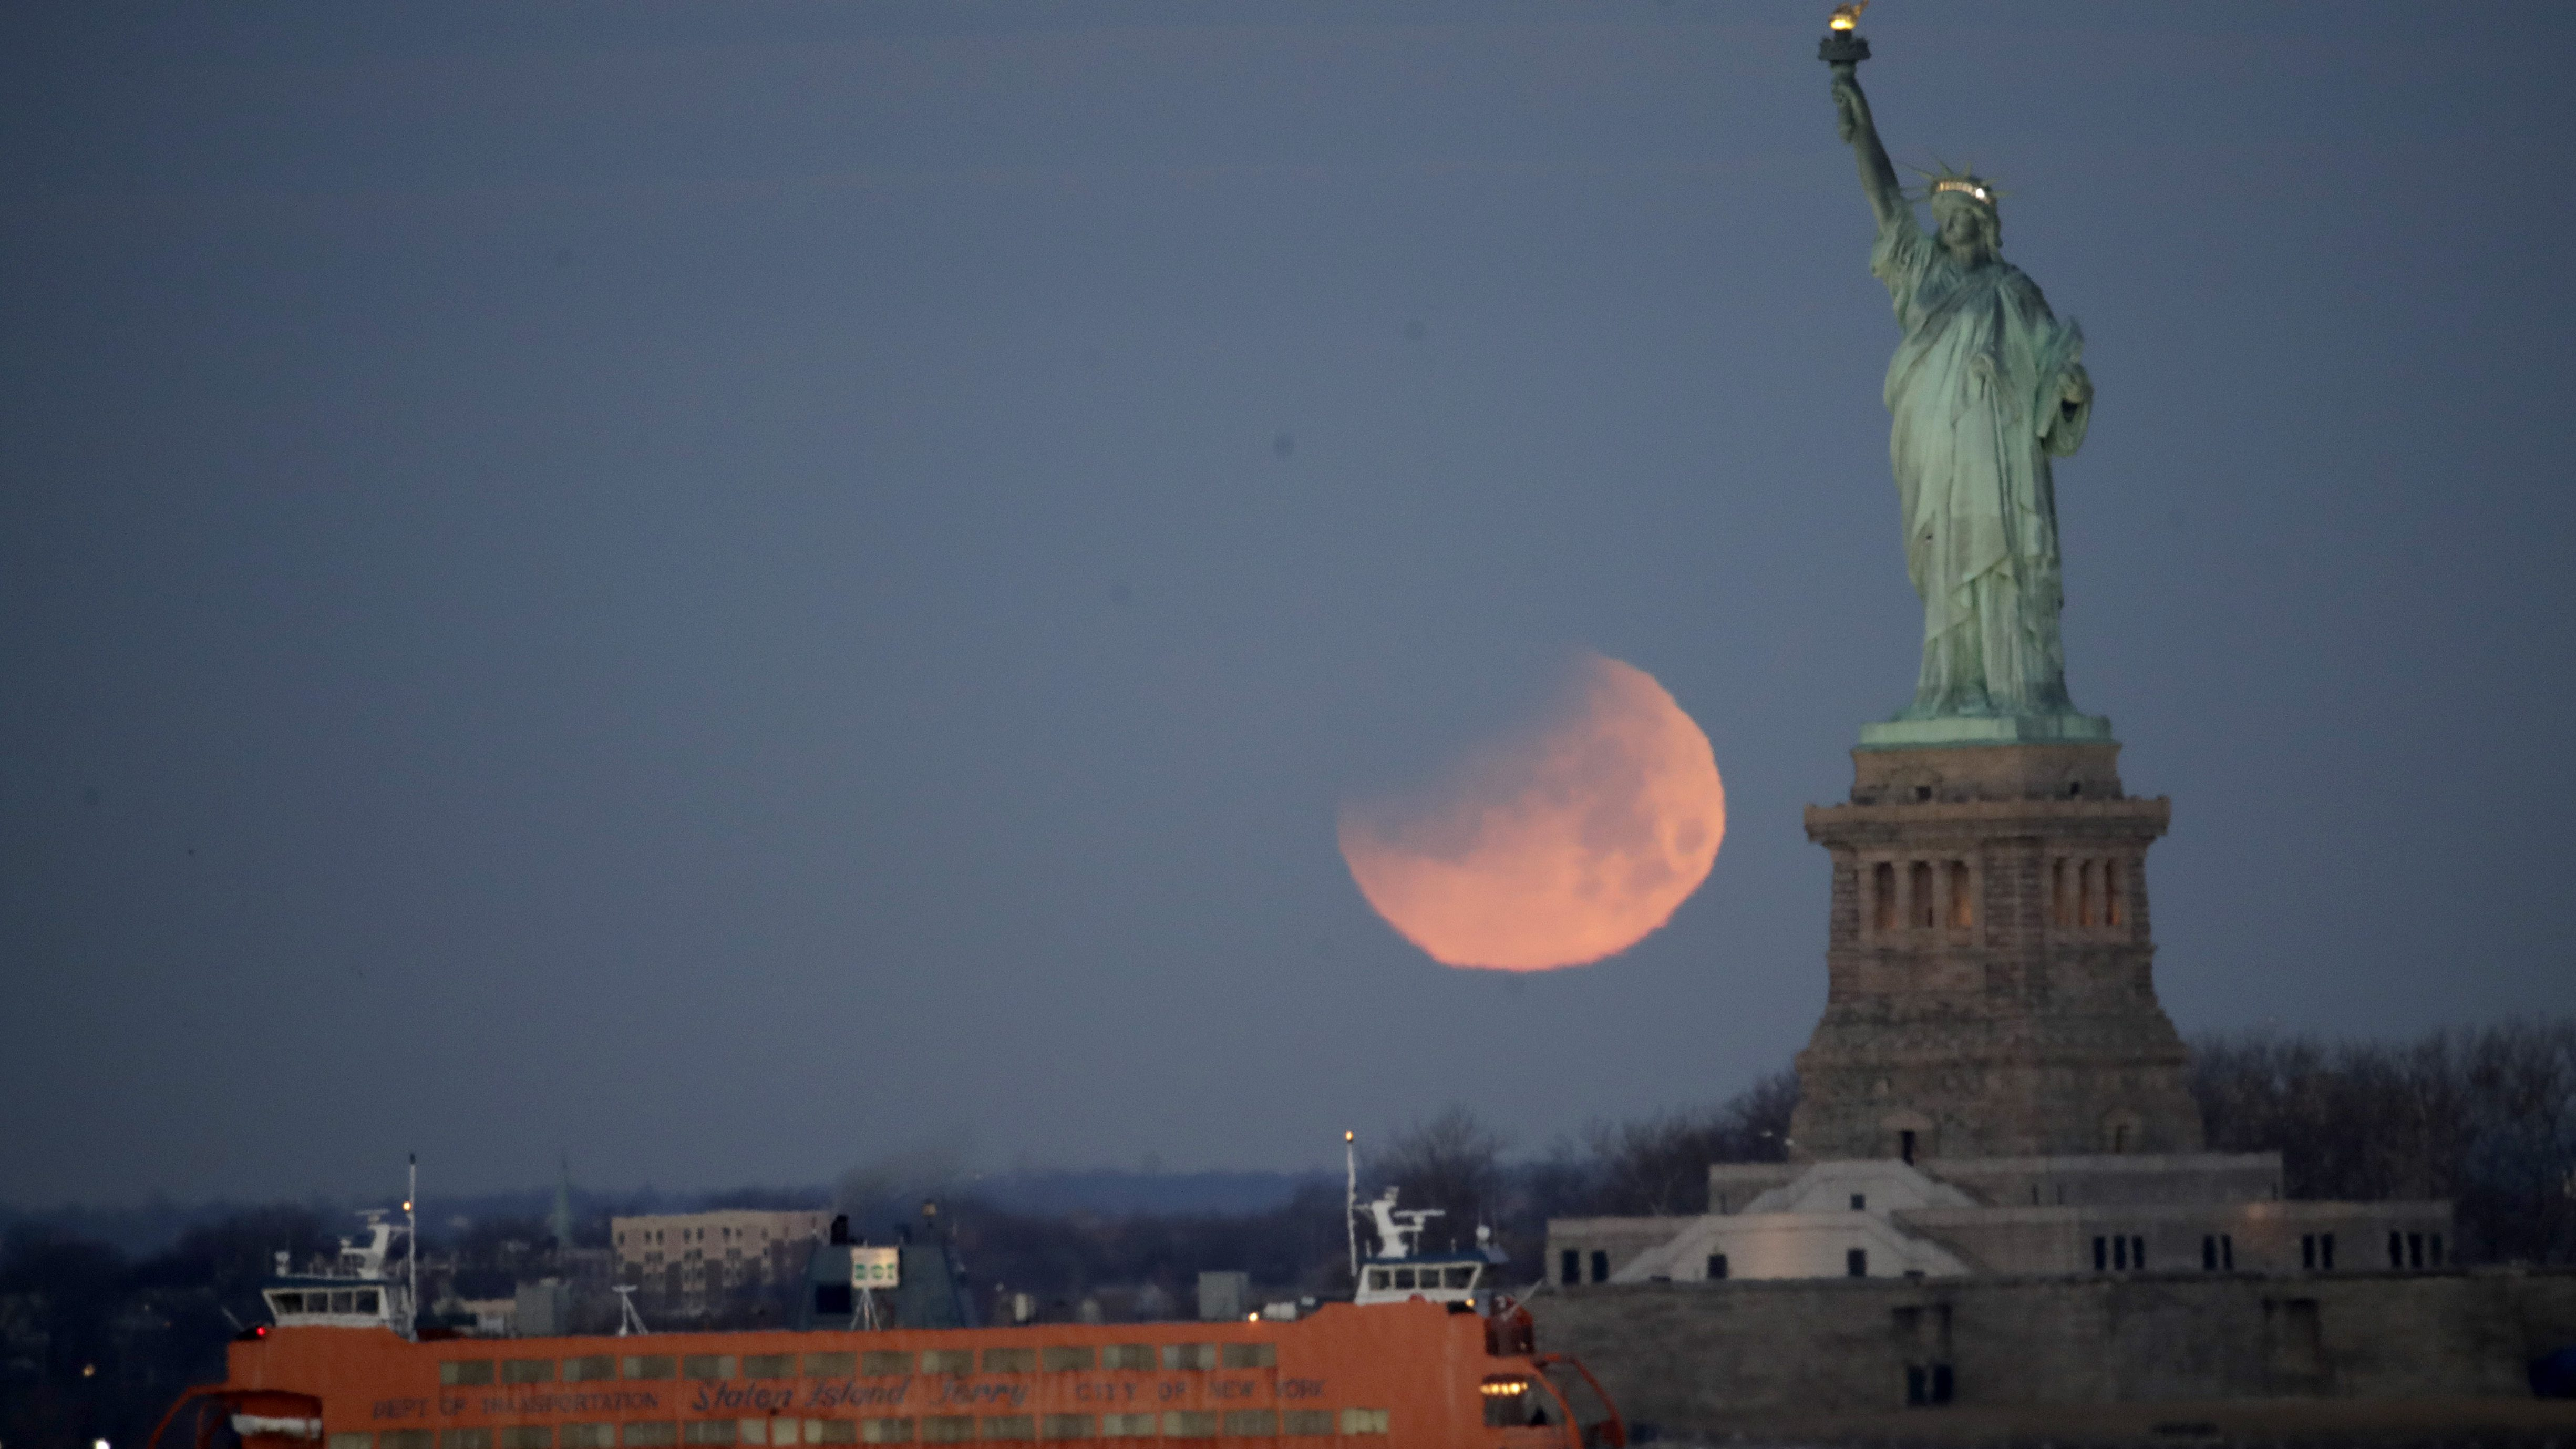 The Statue of Liberty and the Staten Island Ferry are backdropped by a supermoon, Wednesday, Jan. 31, 2018, seen from the Brooklyn borough of New York. The supermoon, which is the final of three consecutive supermoons, also experience lunar eclipse as it set over the horizon, but only a partial eclipse was visible in the East Coast. (AP Photo/Julio Cortez)